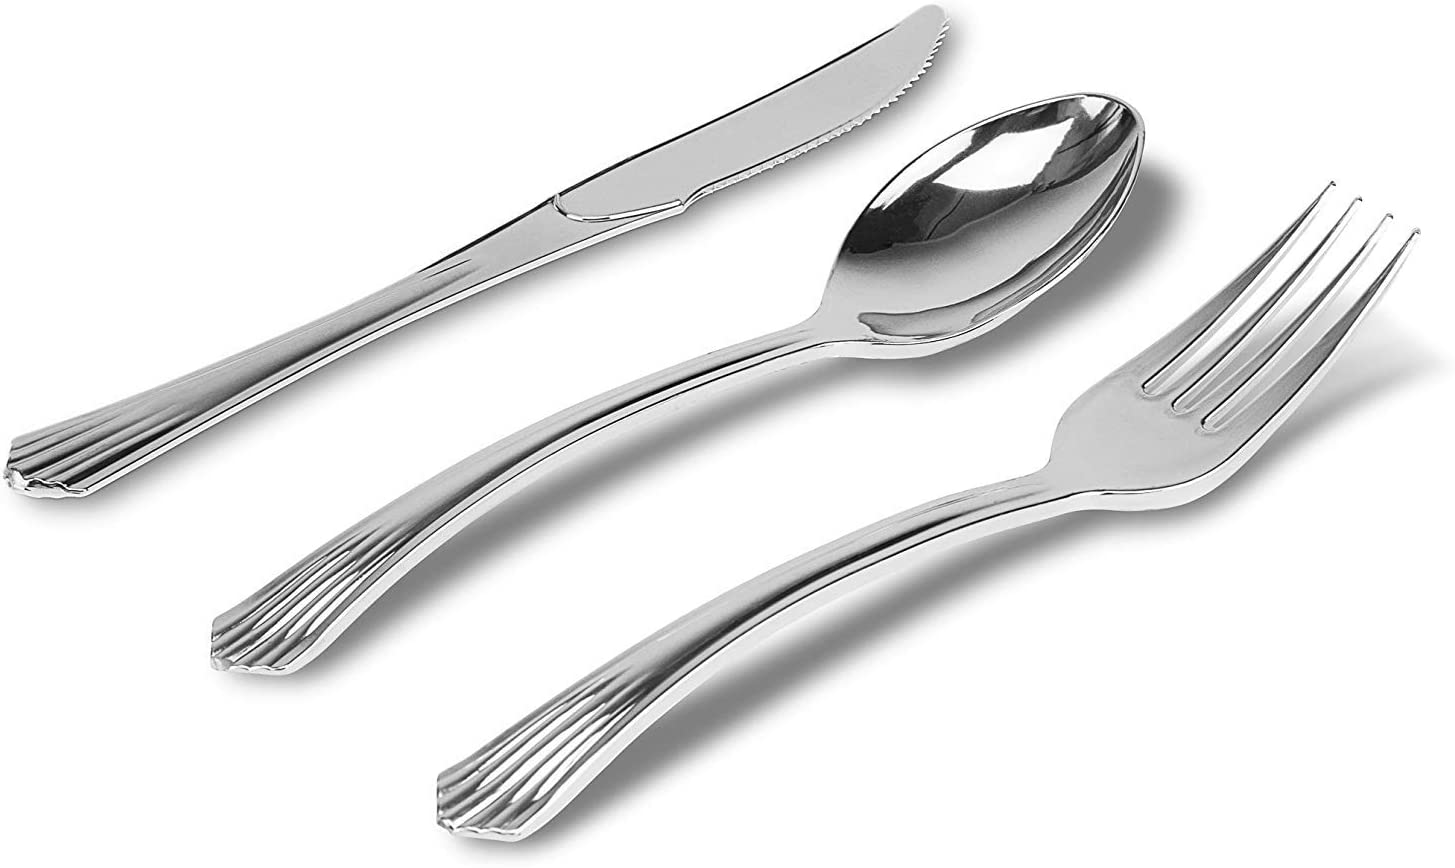 DecorRack Plastic Silverware Set, 288 pieces -BPA FREE- Heavyweight Fancy Silver Finish Disposable Dinnerware, Elegant Silver Plastic Cutlery, Plastic Utensils Set for Wedding, Catering, Party